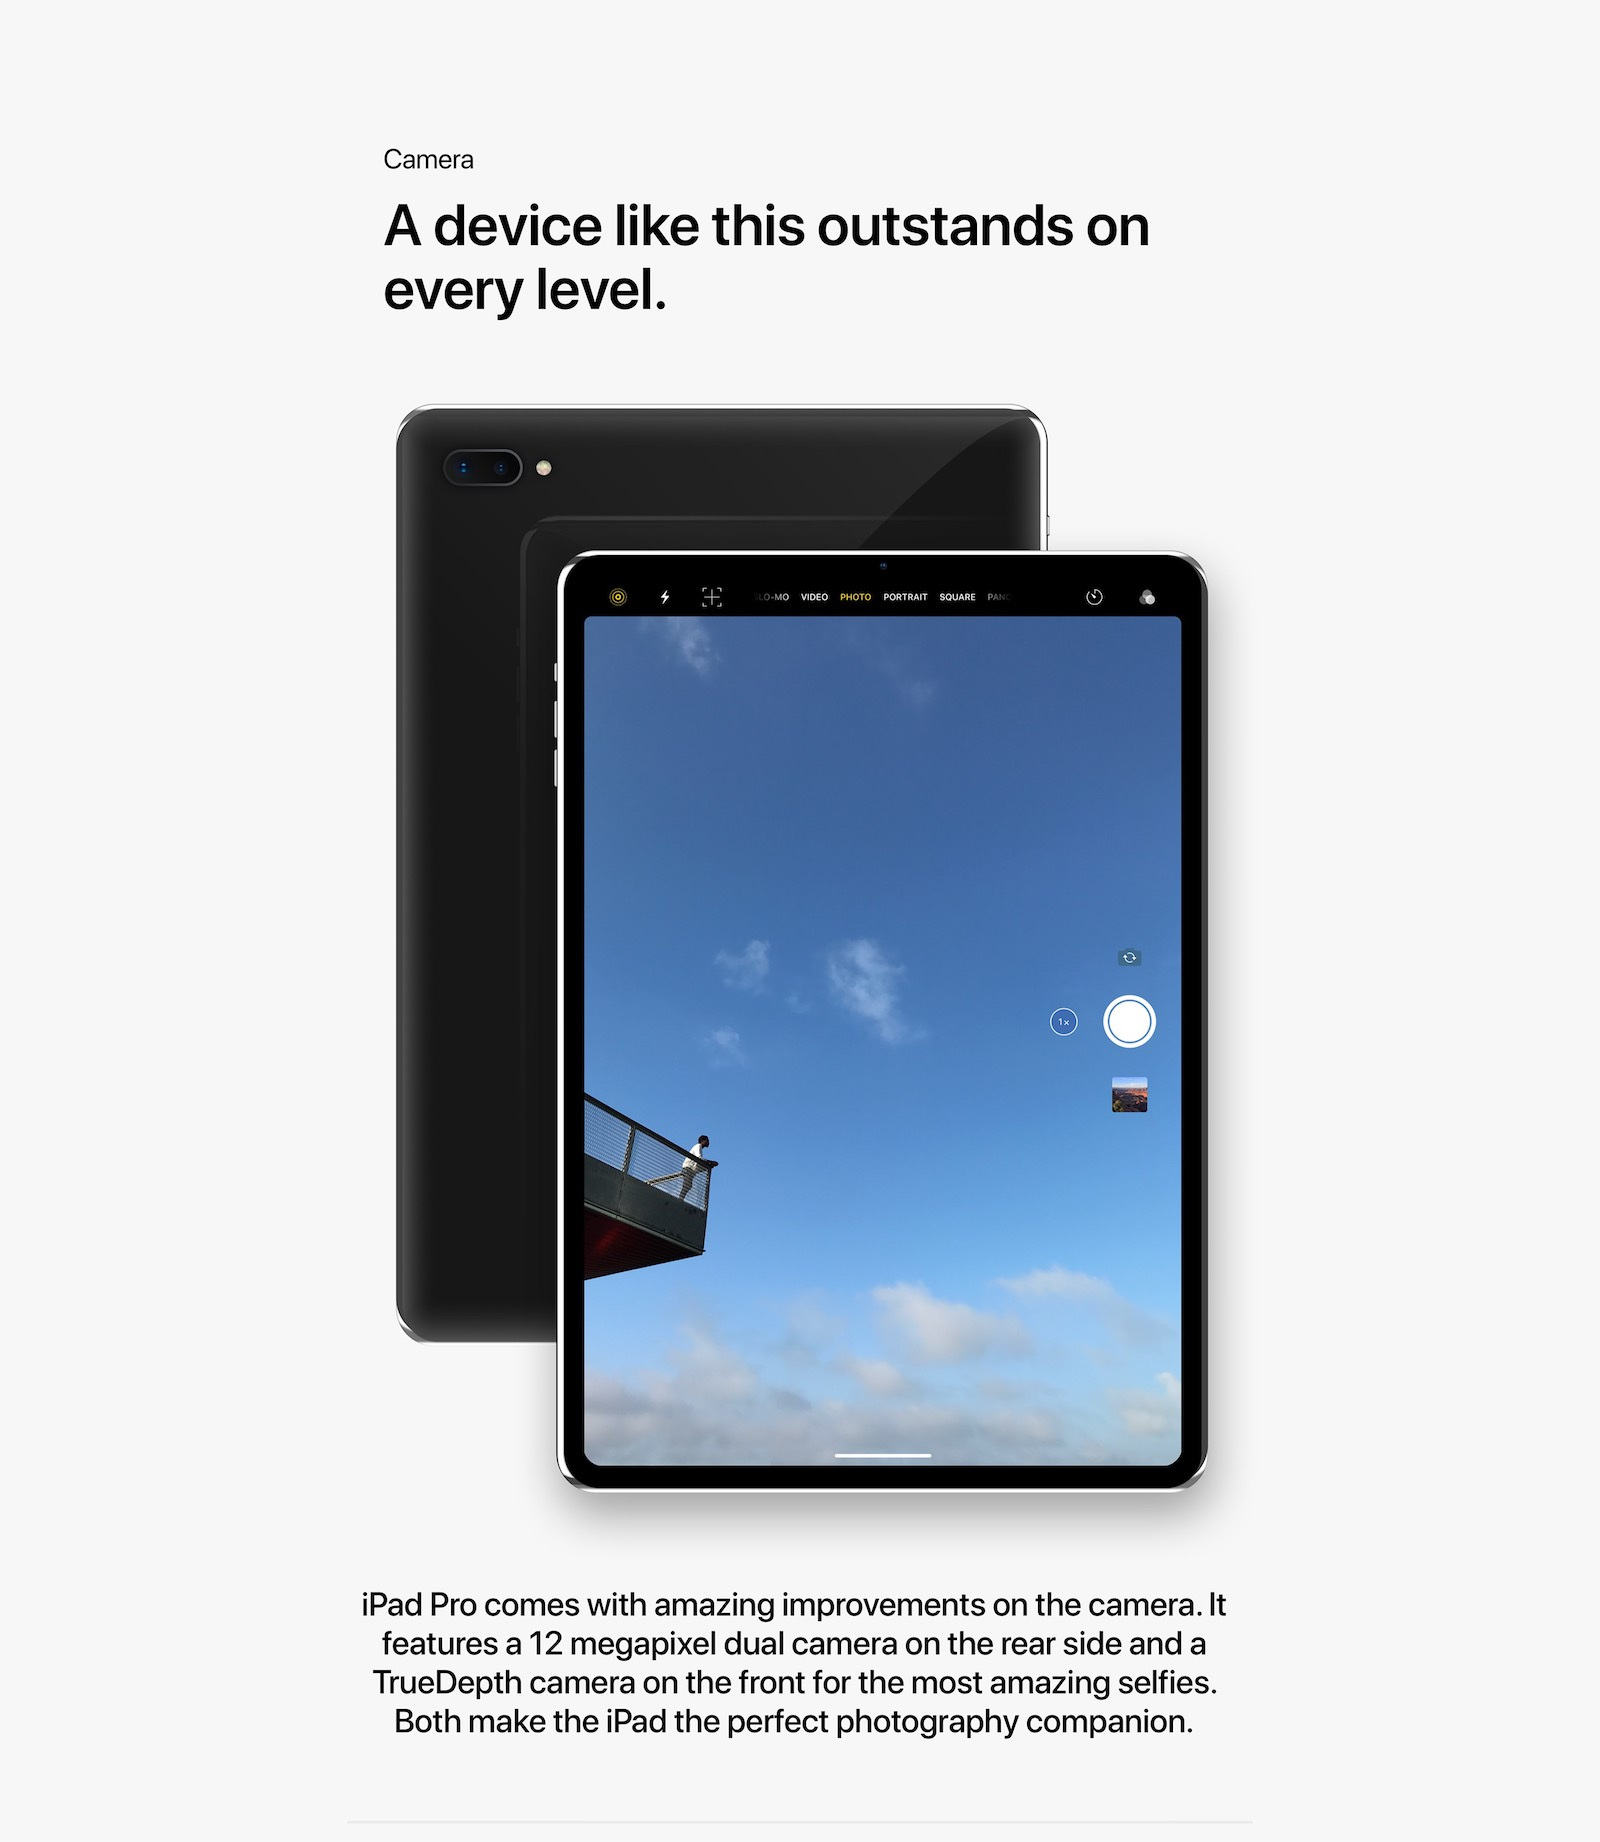 ipad-pro-concept-image-apple-page-1.jpg